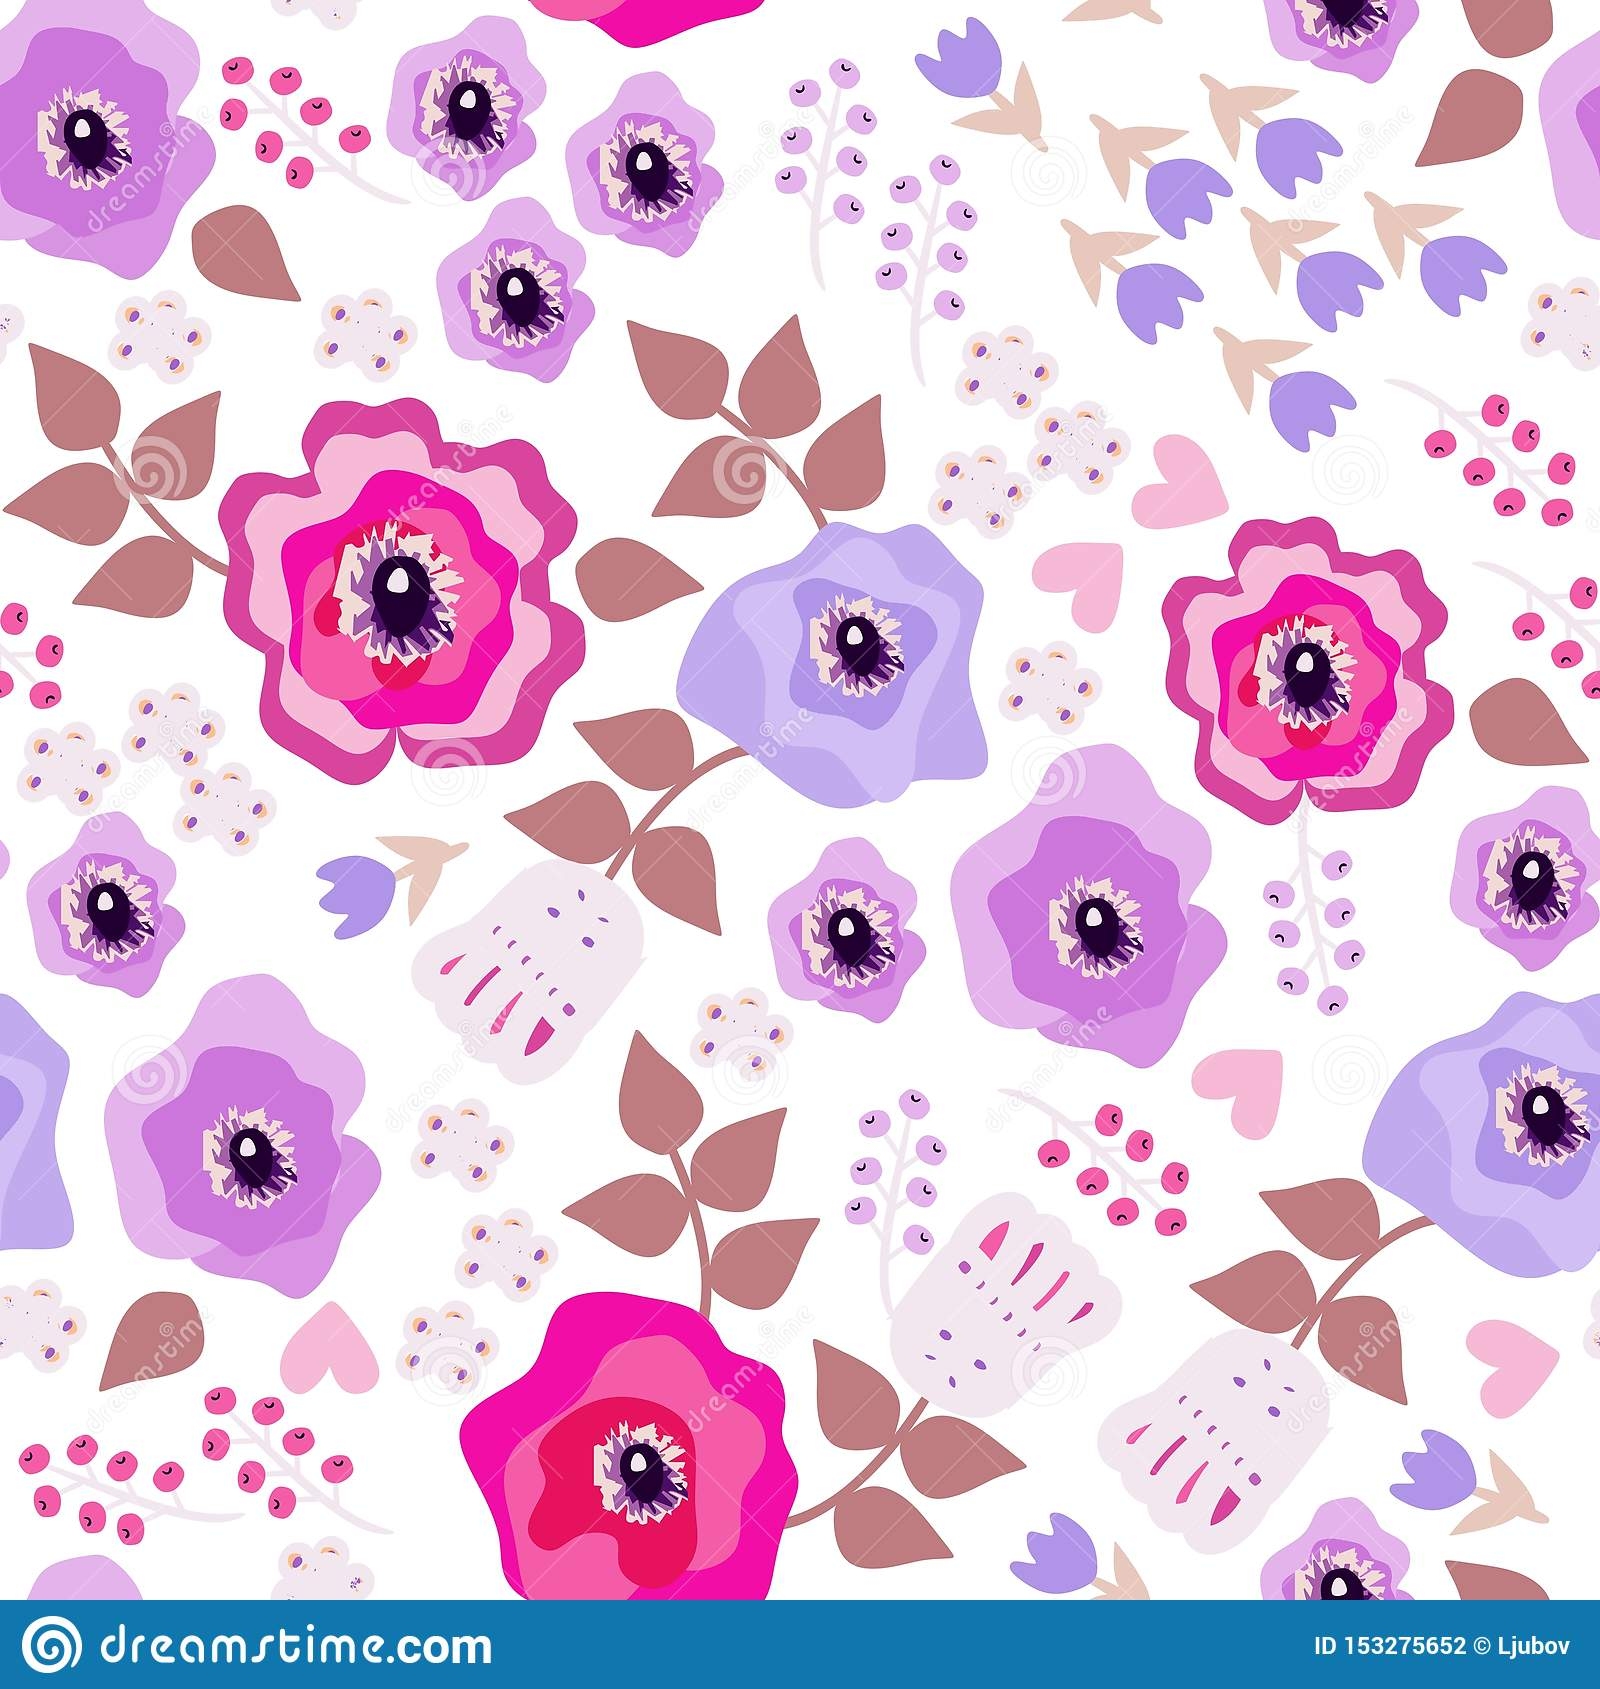 Romantic seamless pattern with flowers in folk style. Decorative floral ornament on white background